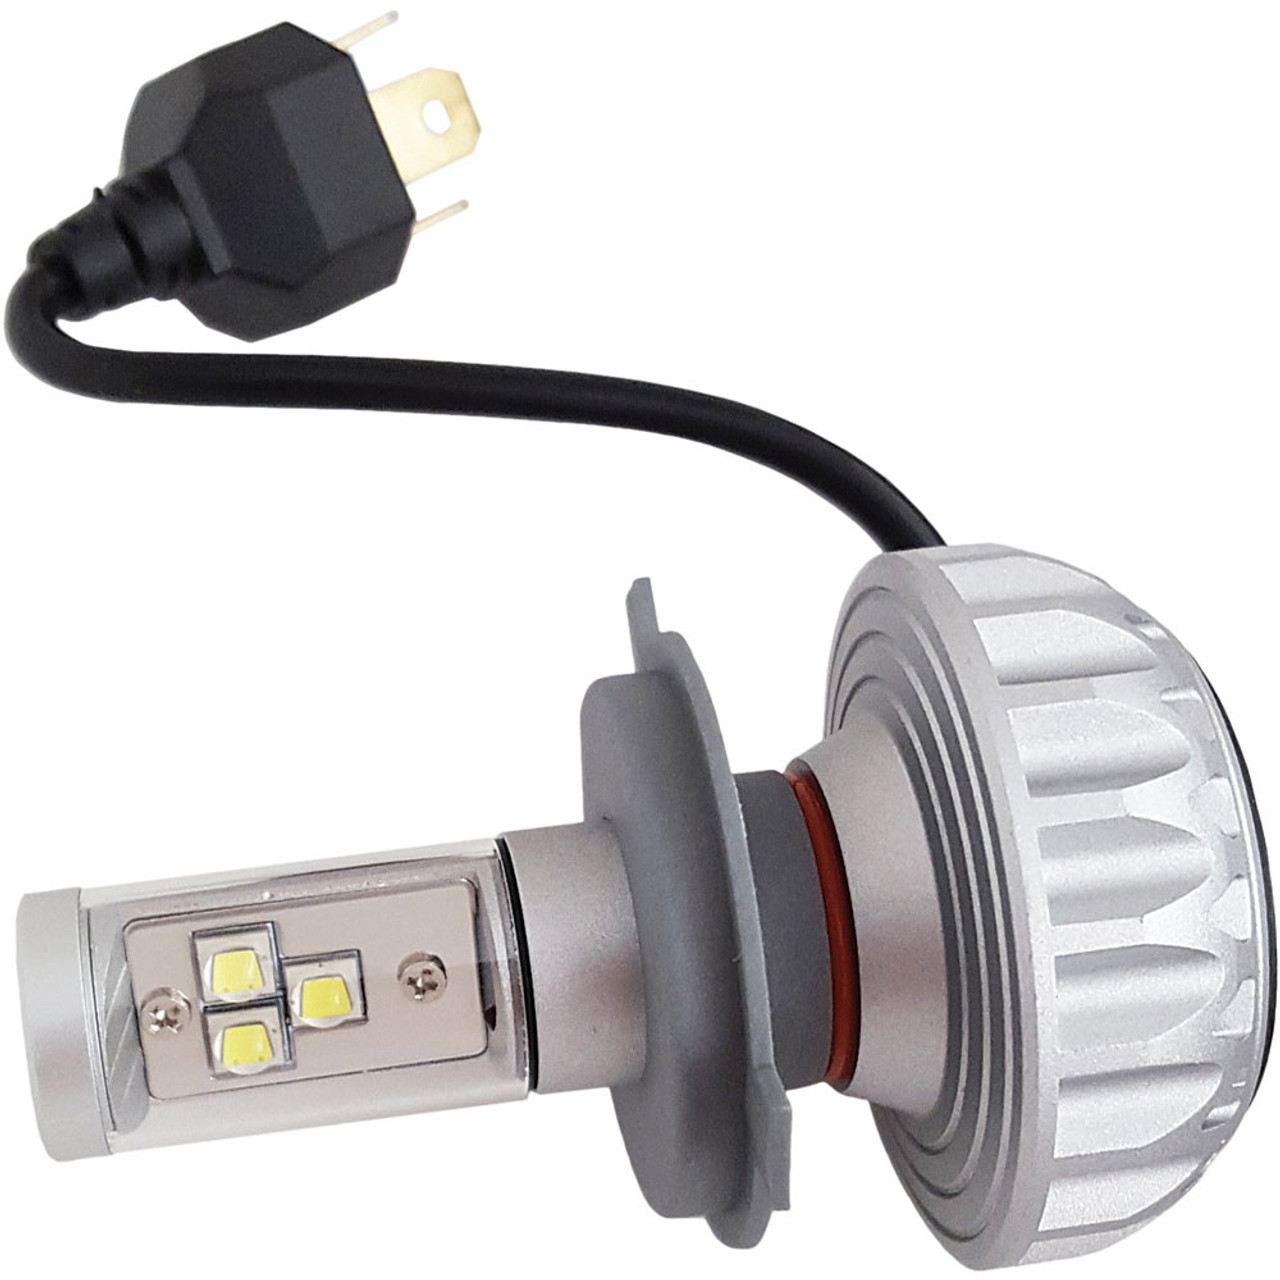 Led Replacement Headlight Bulbs >> Pathfinder Performance H4 Led Headlight Bulb For Harley Get